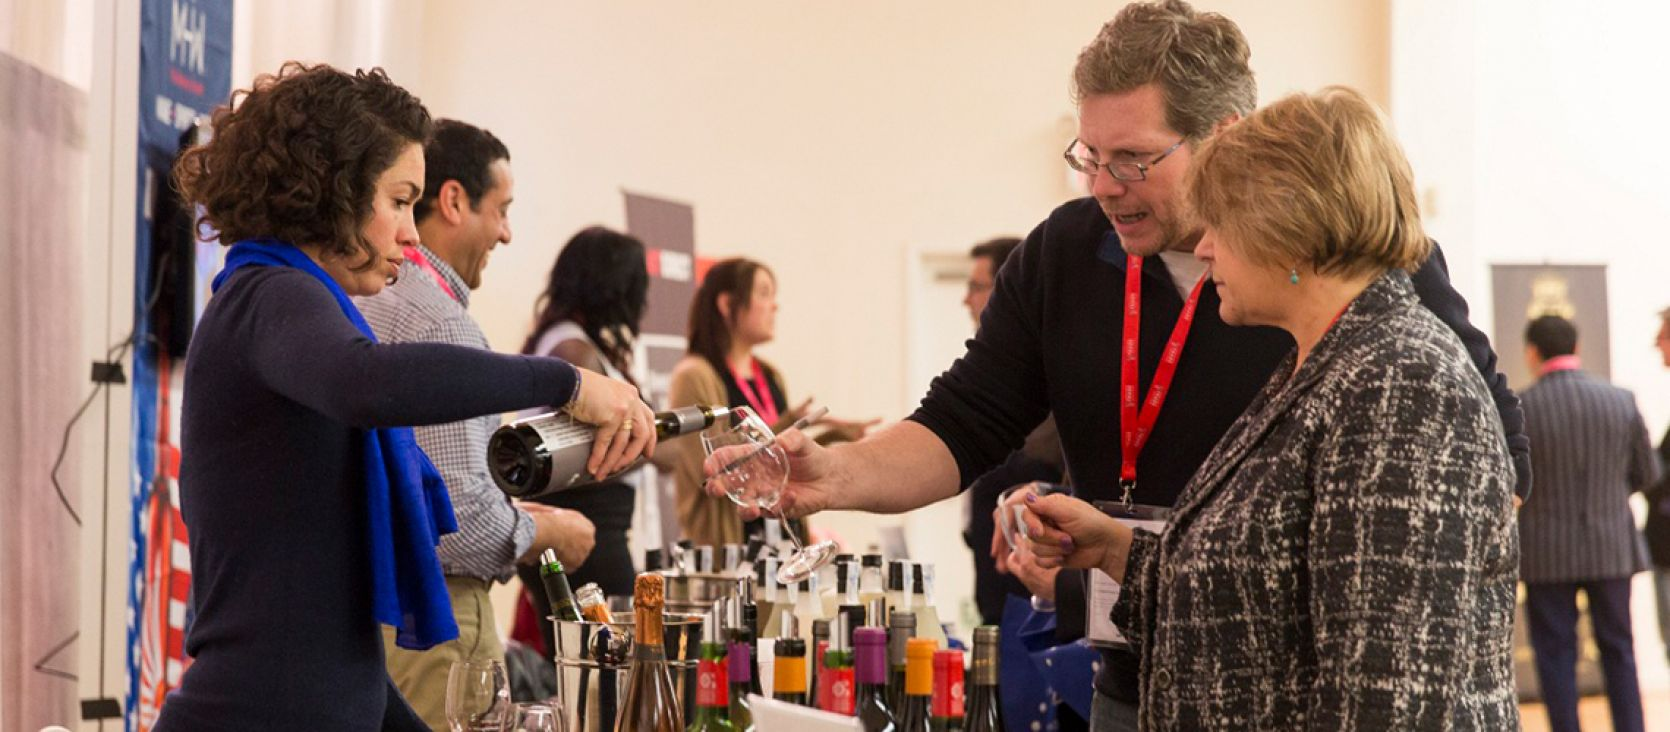 Photo for: Become an Exhibitor at 2021 USA Trade Tasting in NYC